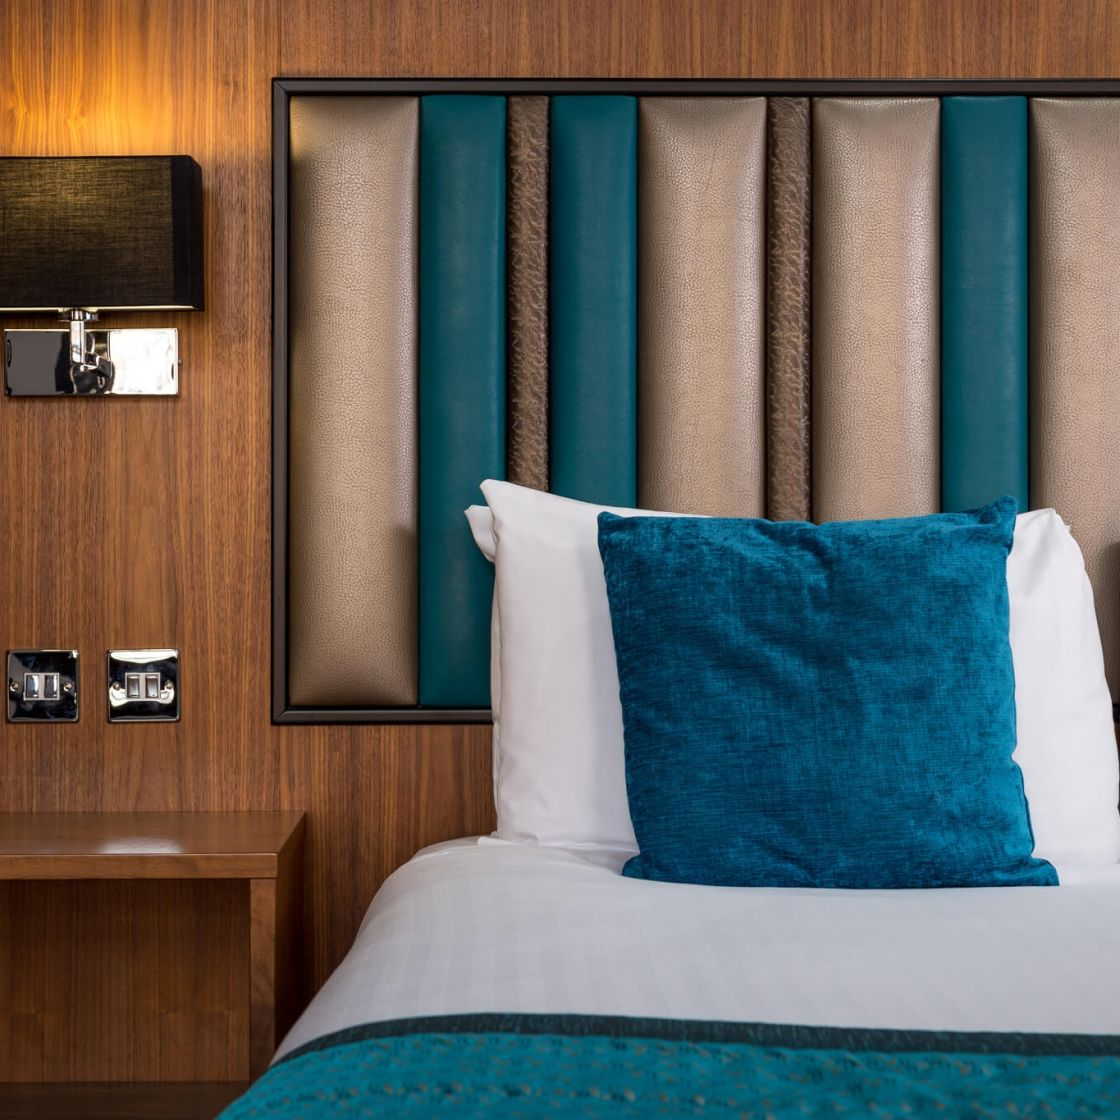 King Size Bed with bedside power points. IconInc @ Roomzzz. Student Apartments in Manchester